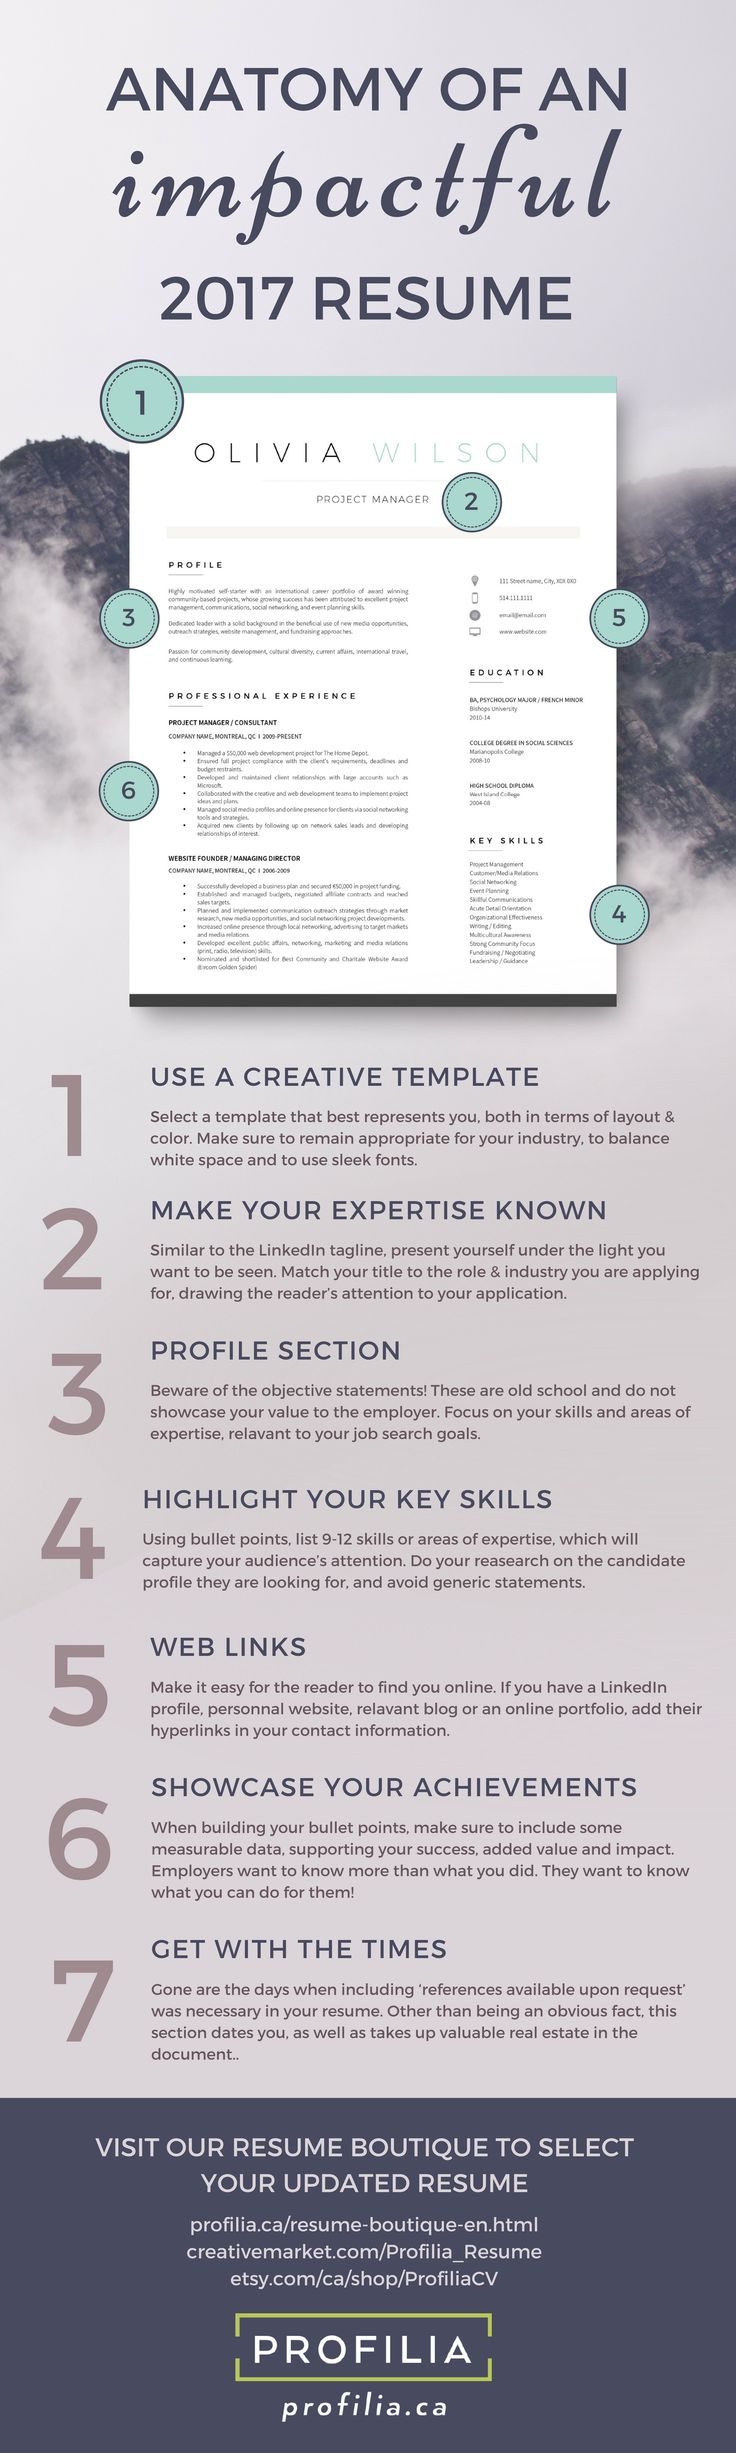 How To Make A Perfect Resume Step By Step Alluring 387 Best Resumes Images On Pinterest  Resume Career And Cover .